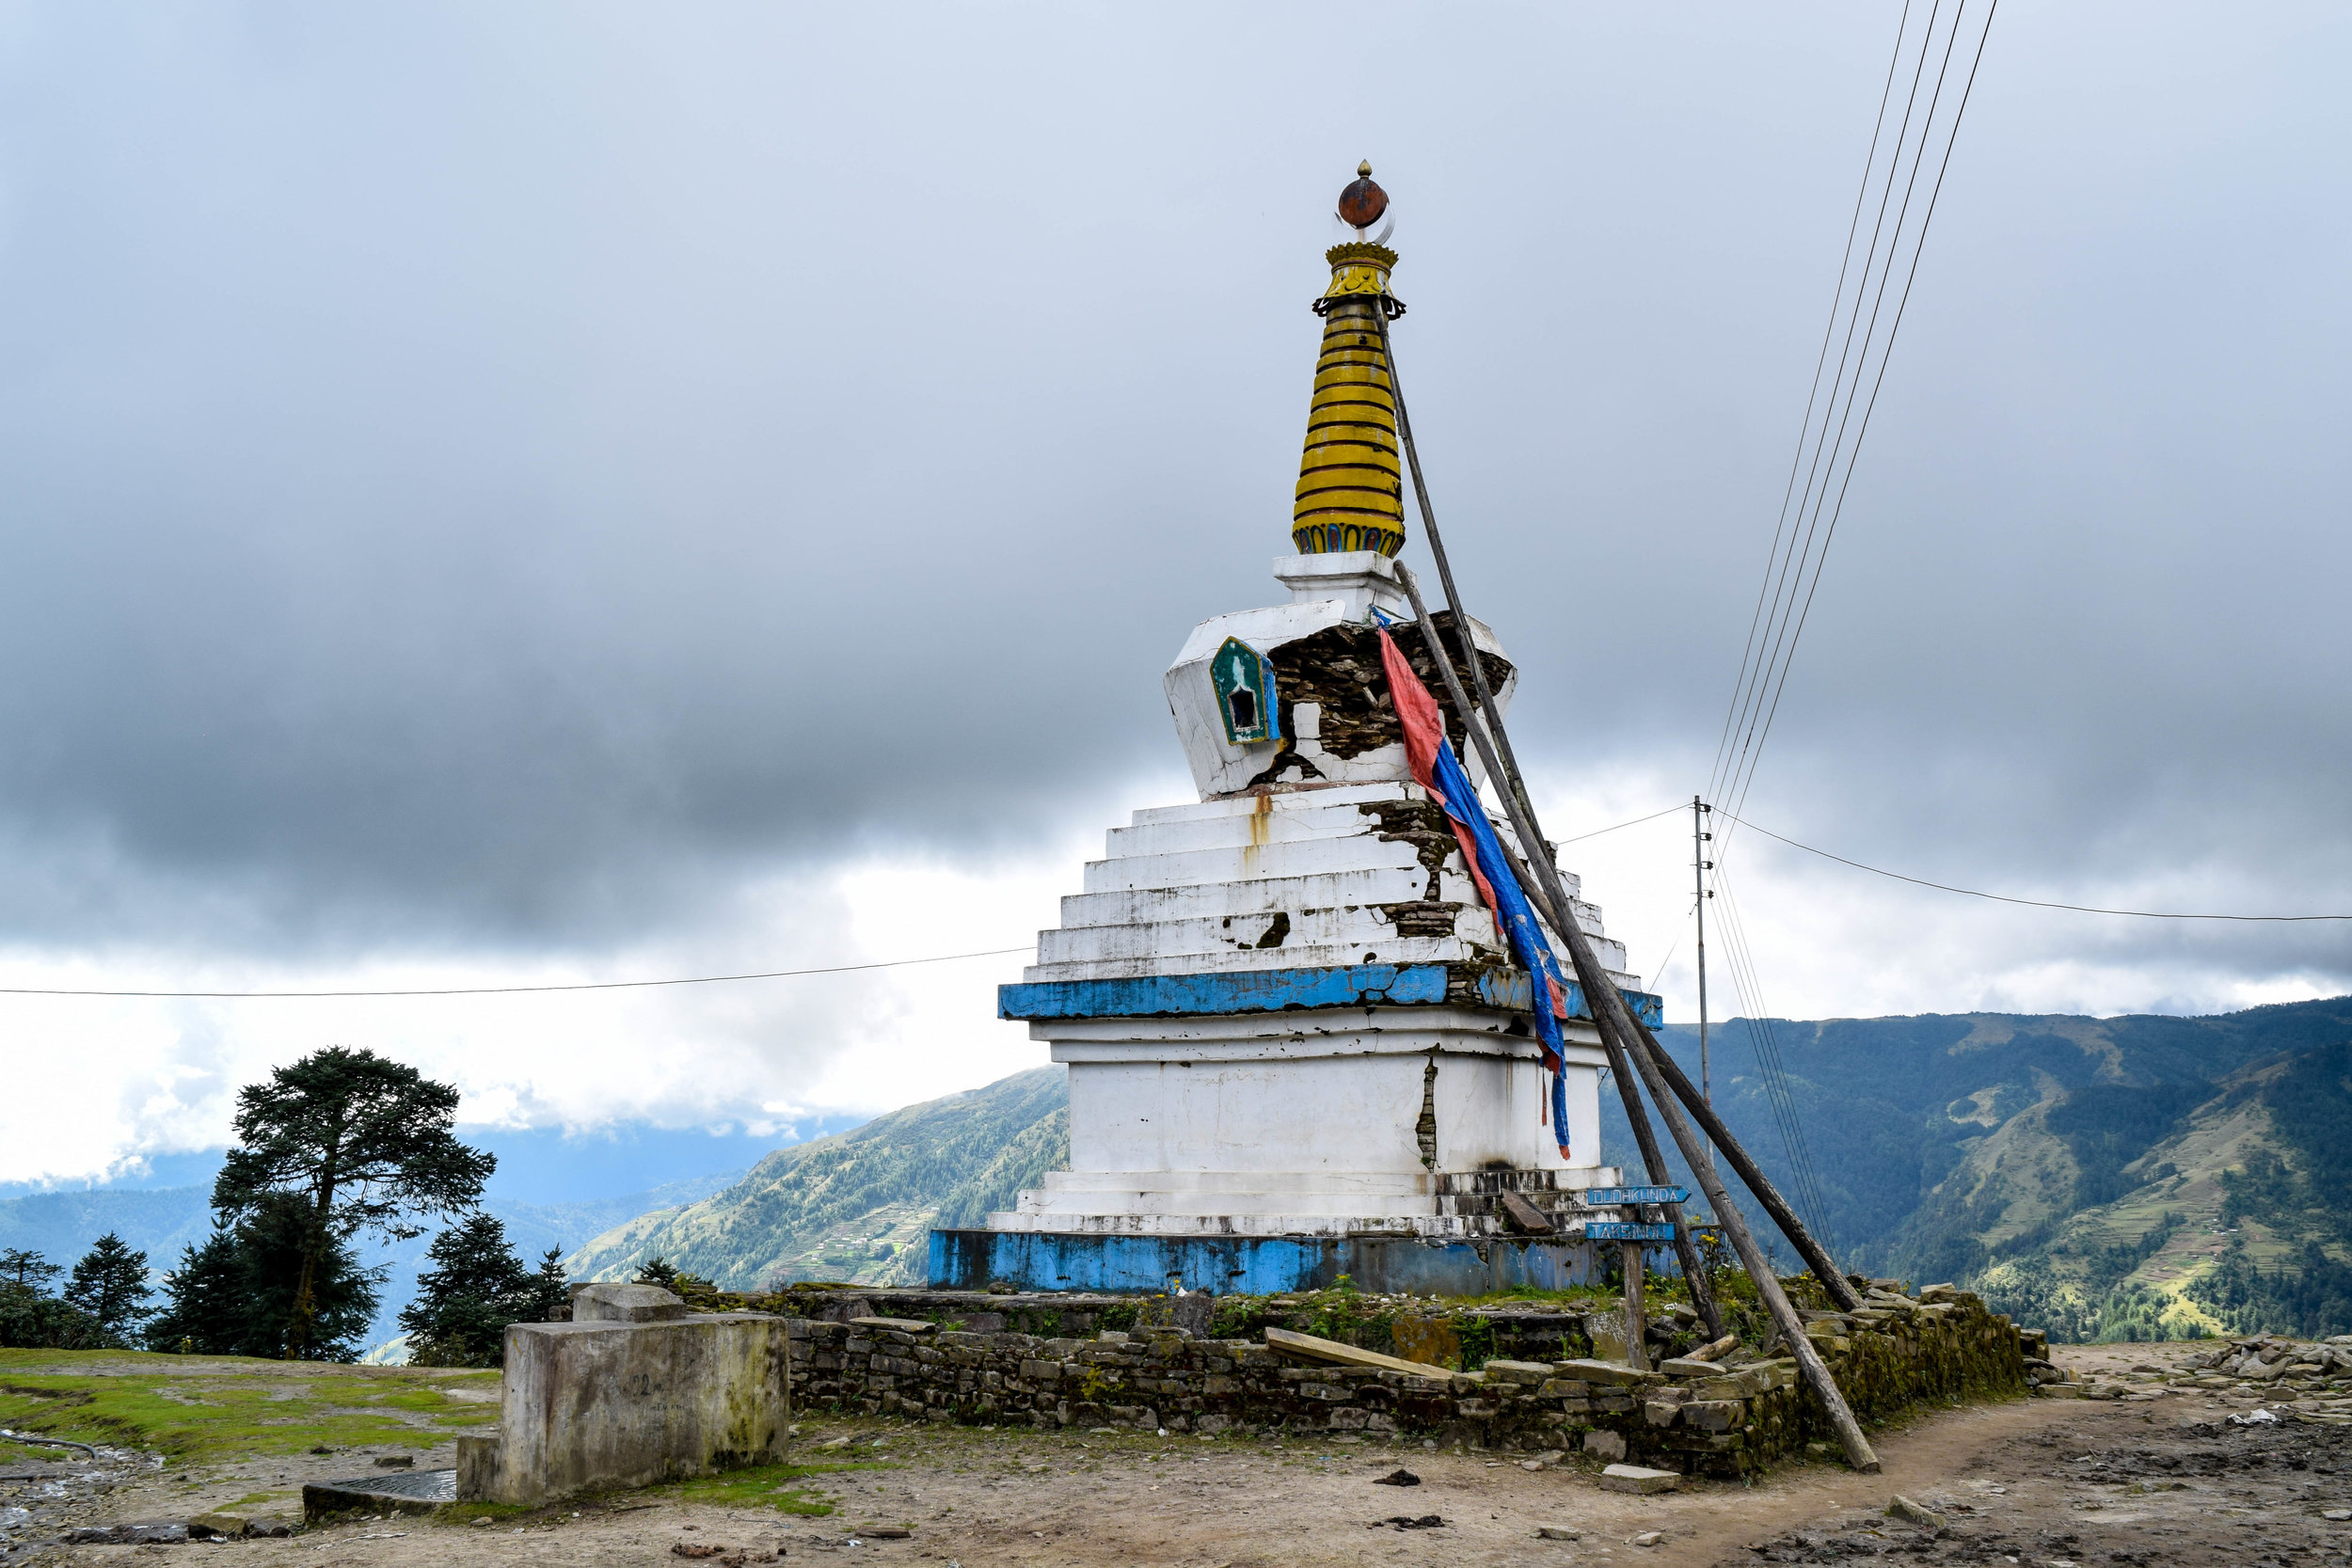 One of the first stupas we encountered on the trek. We saw a lot of them.